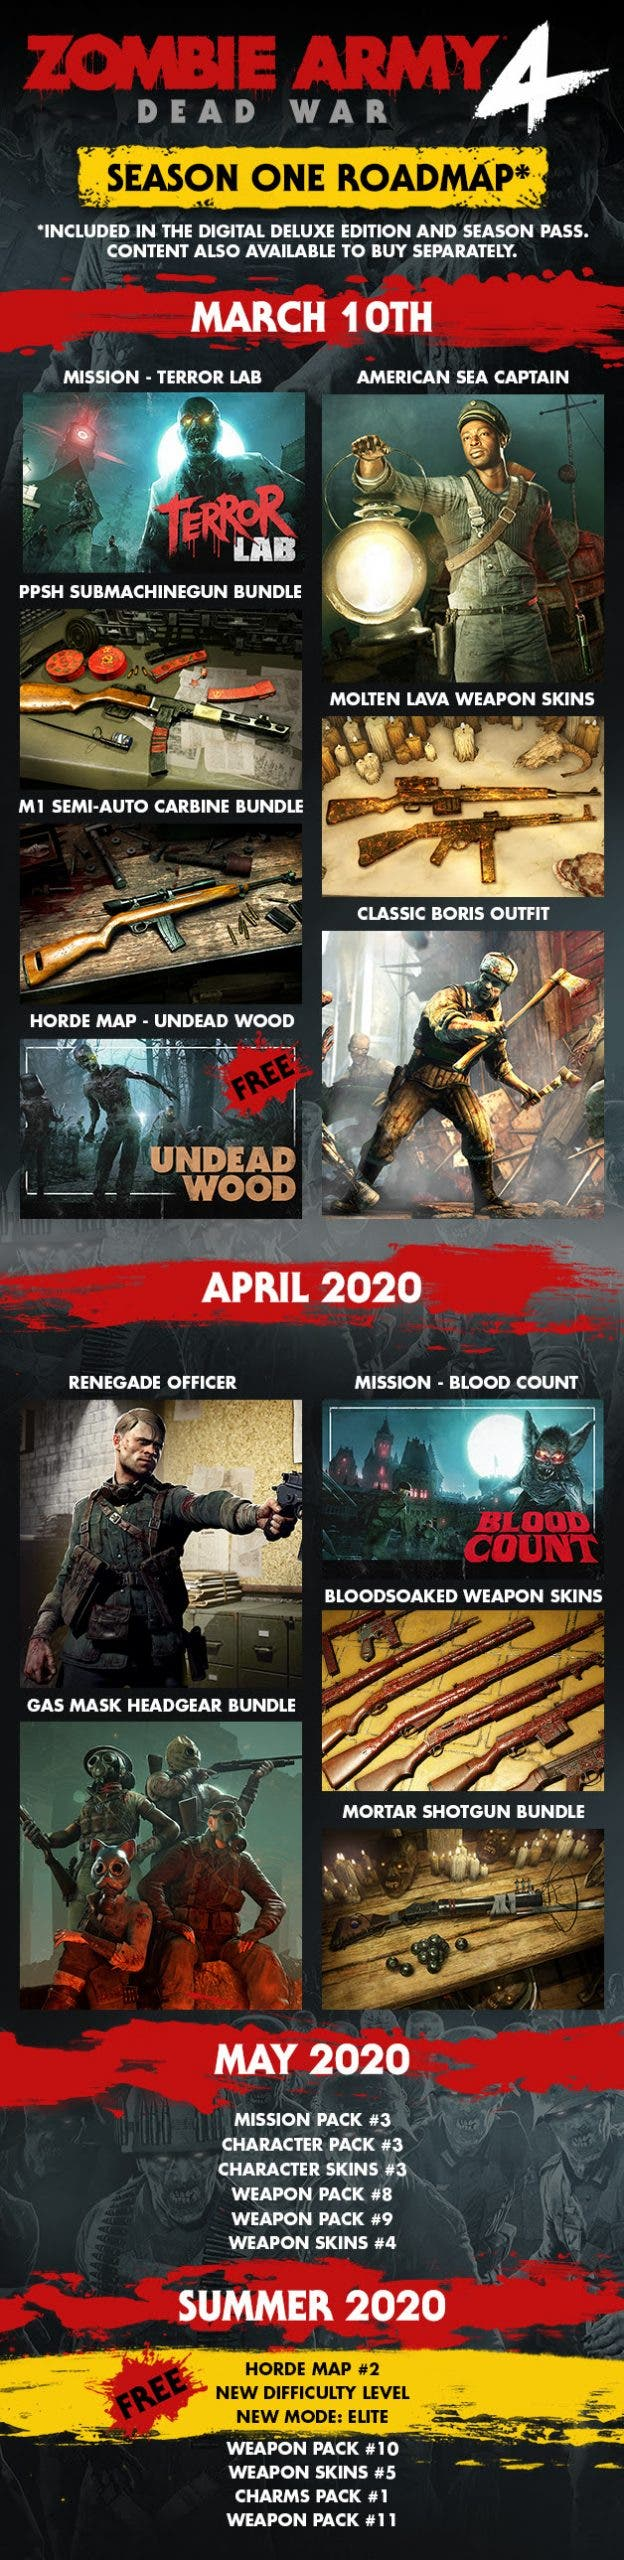 "March 10th 2020 Campaign Mission ""Terror Lab"" American Sea Captain PPSH Submachine Gun Bundle M1 Semi-auto Carbine Bundle Molten Lava Weapon Skins Classic Boris Outfit FREE Horde Map ""Undead Wood"" April 2020 Campaign Mission ""Blood Count"" Renegade Officer Bloodsoaked Weapon Skins Gas Mask Headgear Bundle Mortar Shotgun Bundle May 2020 Mission Pack #3 Character Pack #3 Character Skins #3 Weapon Pack #8 Weapon Pack #9 Weapon Skins #4 Summer 2020 New FREE Mode New FREE Difficulty Level FREE Horde Map #2 Weapon Pack #10 Weapon Pack #11 Weapon Skins #5 Charms Pack #1"